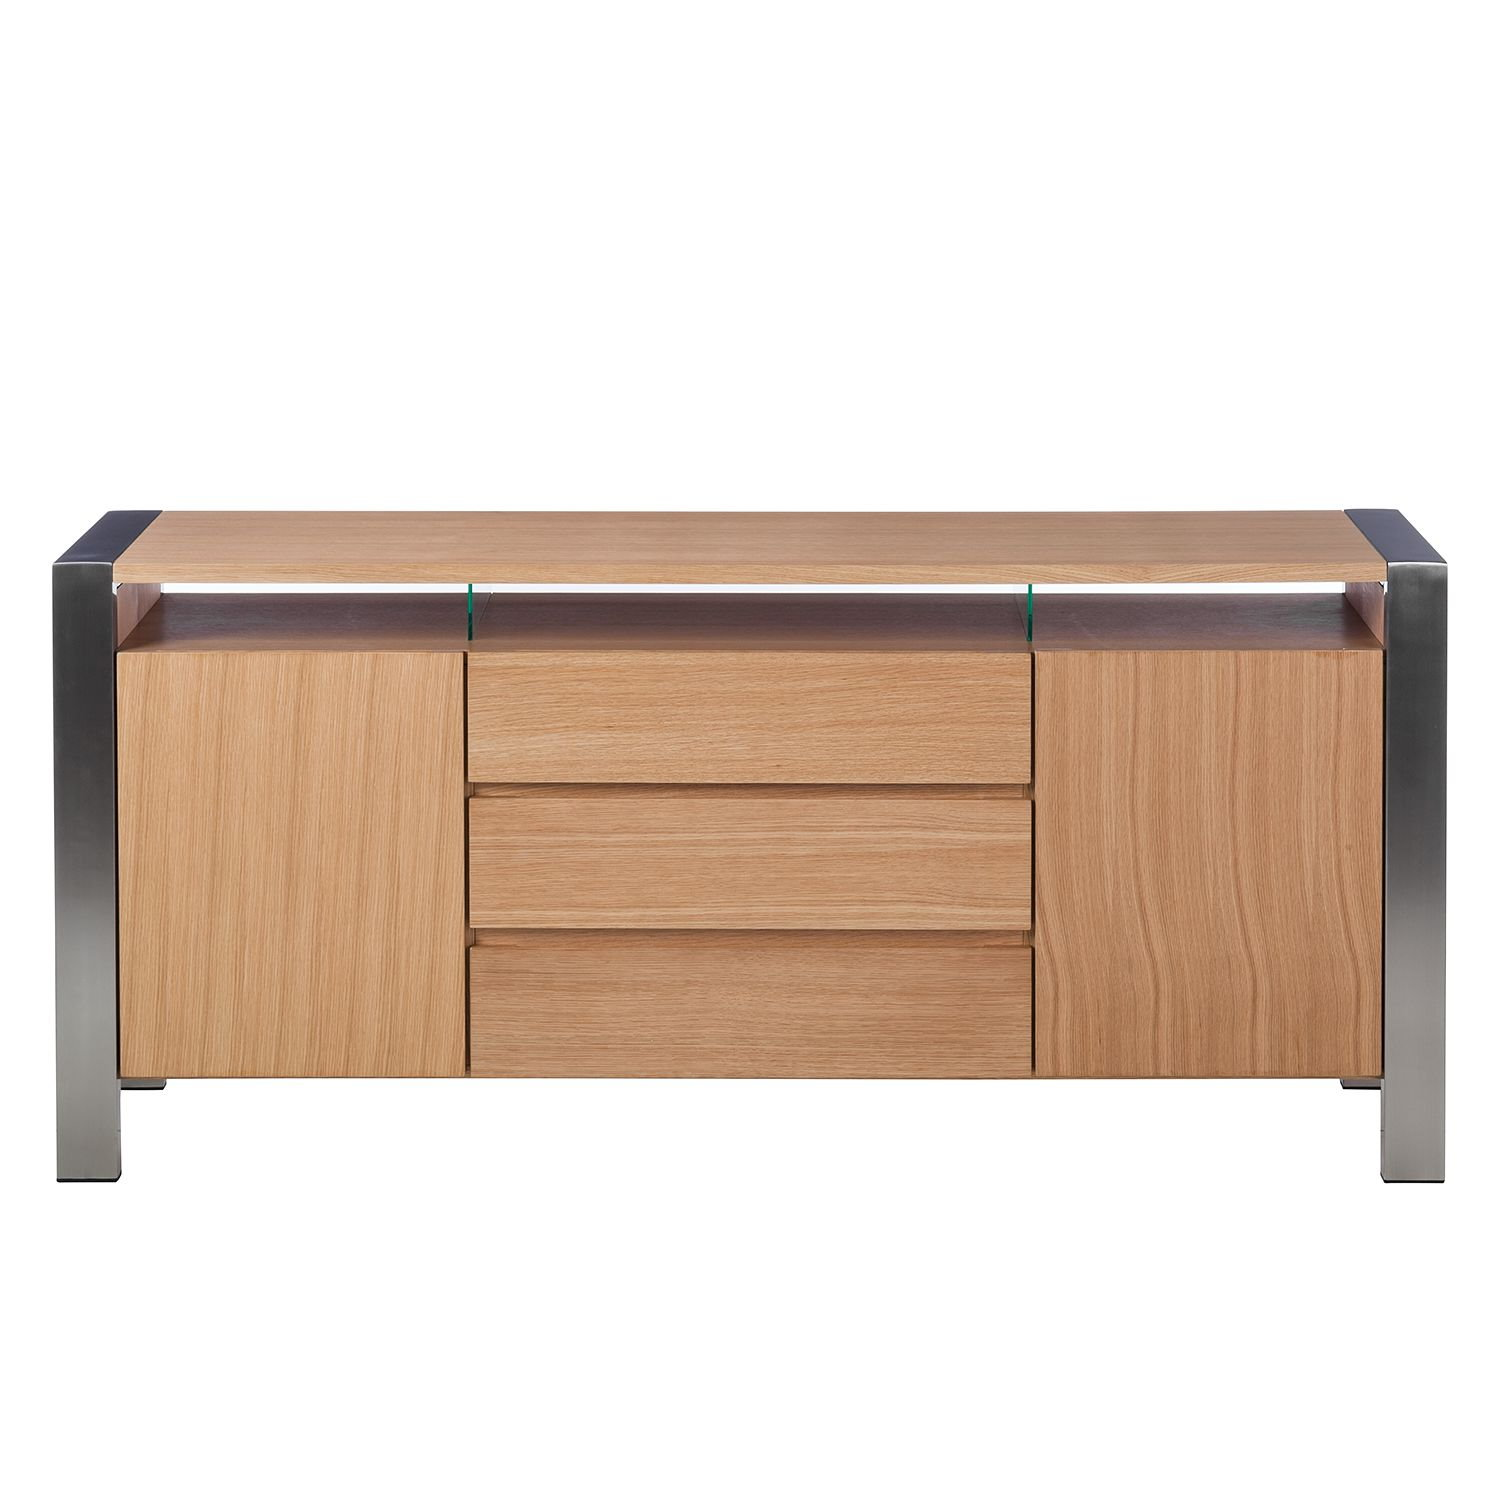 xl sideboard eiche edelstahl kommode anrichte schubladen. Black Bedroom Furniture Sets. Home Design Ideas